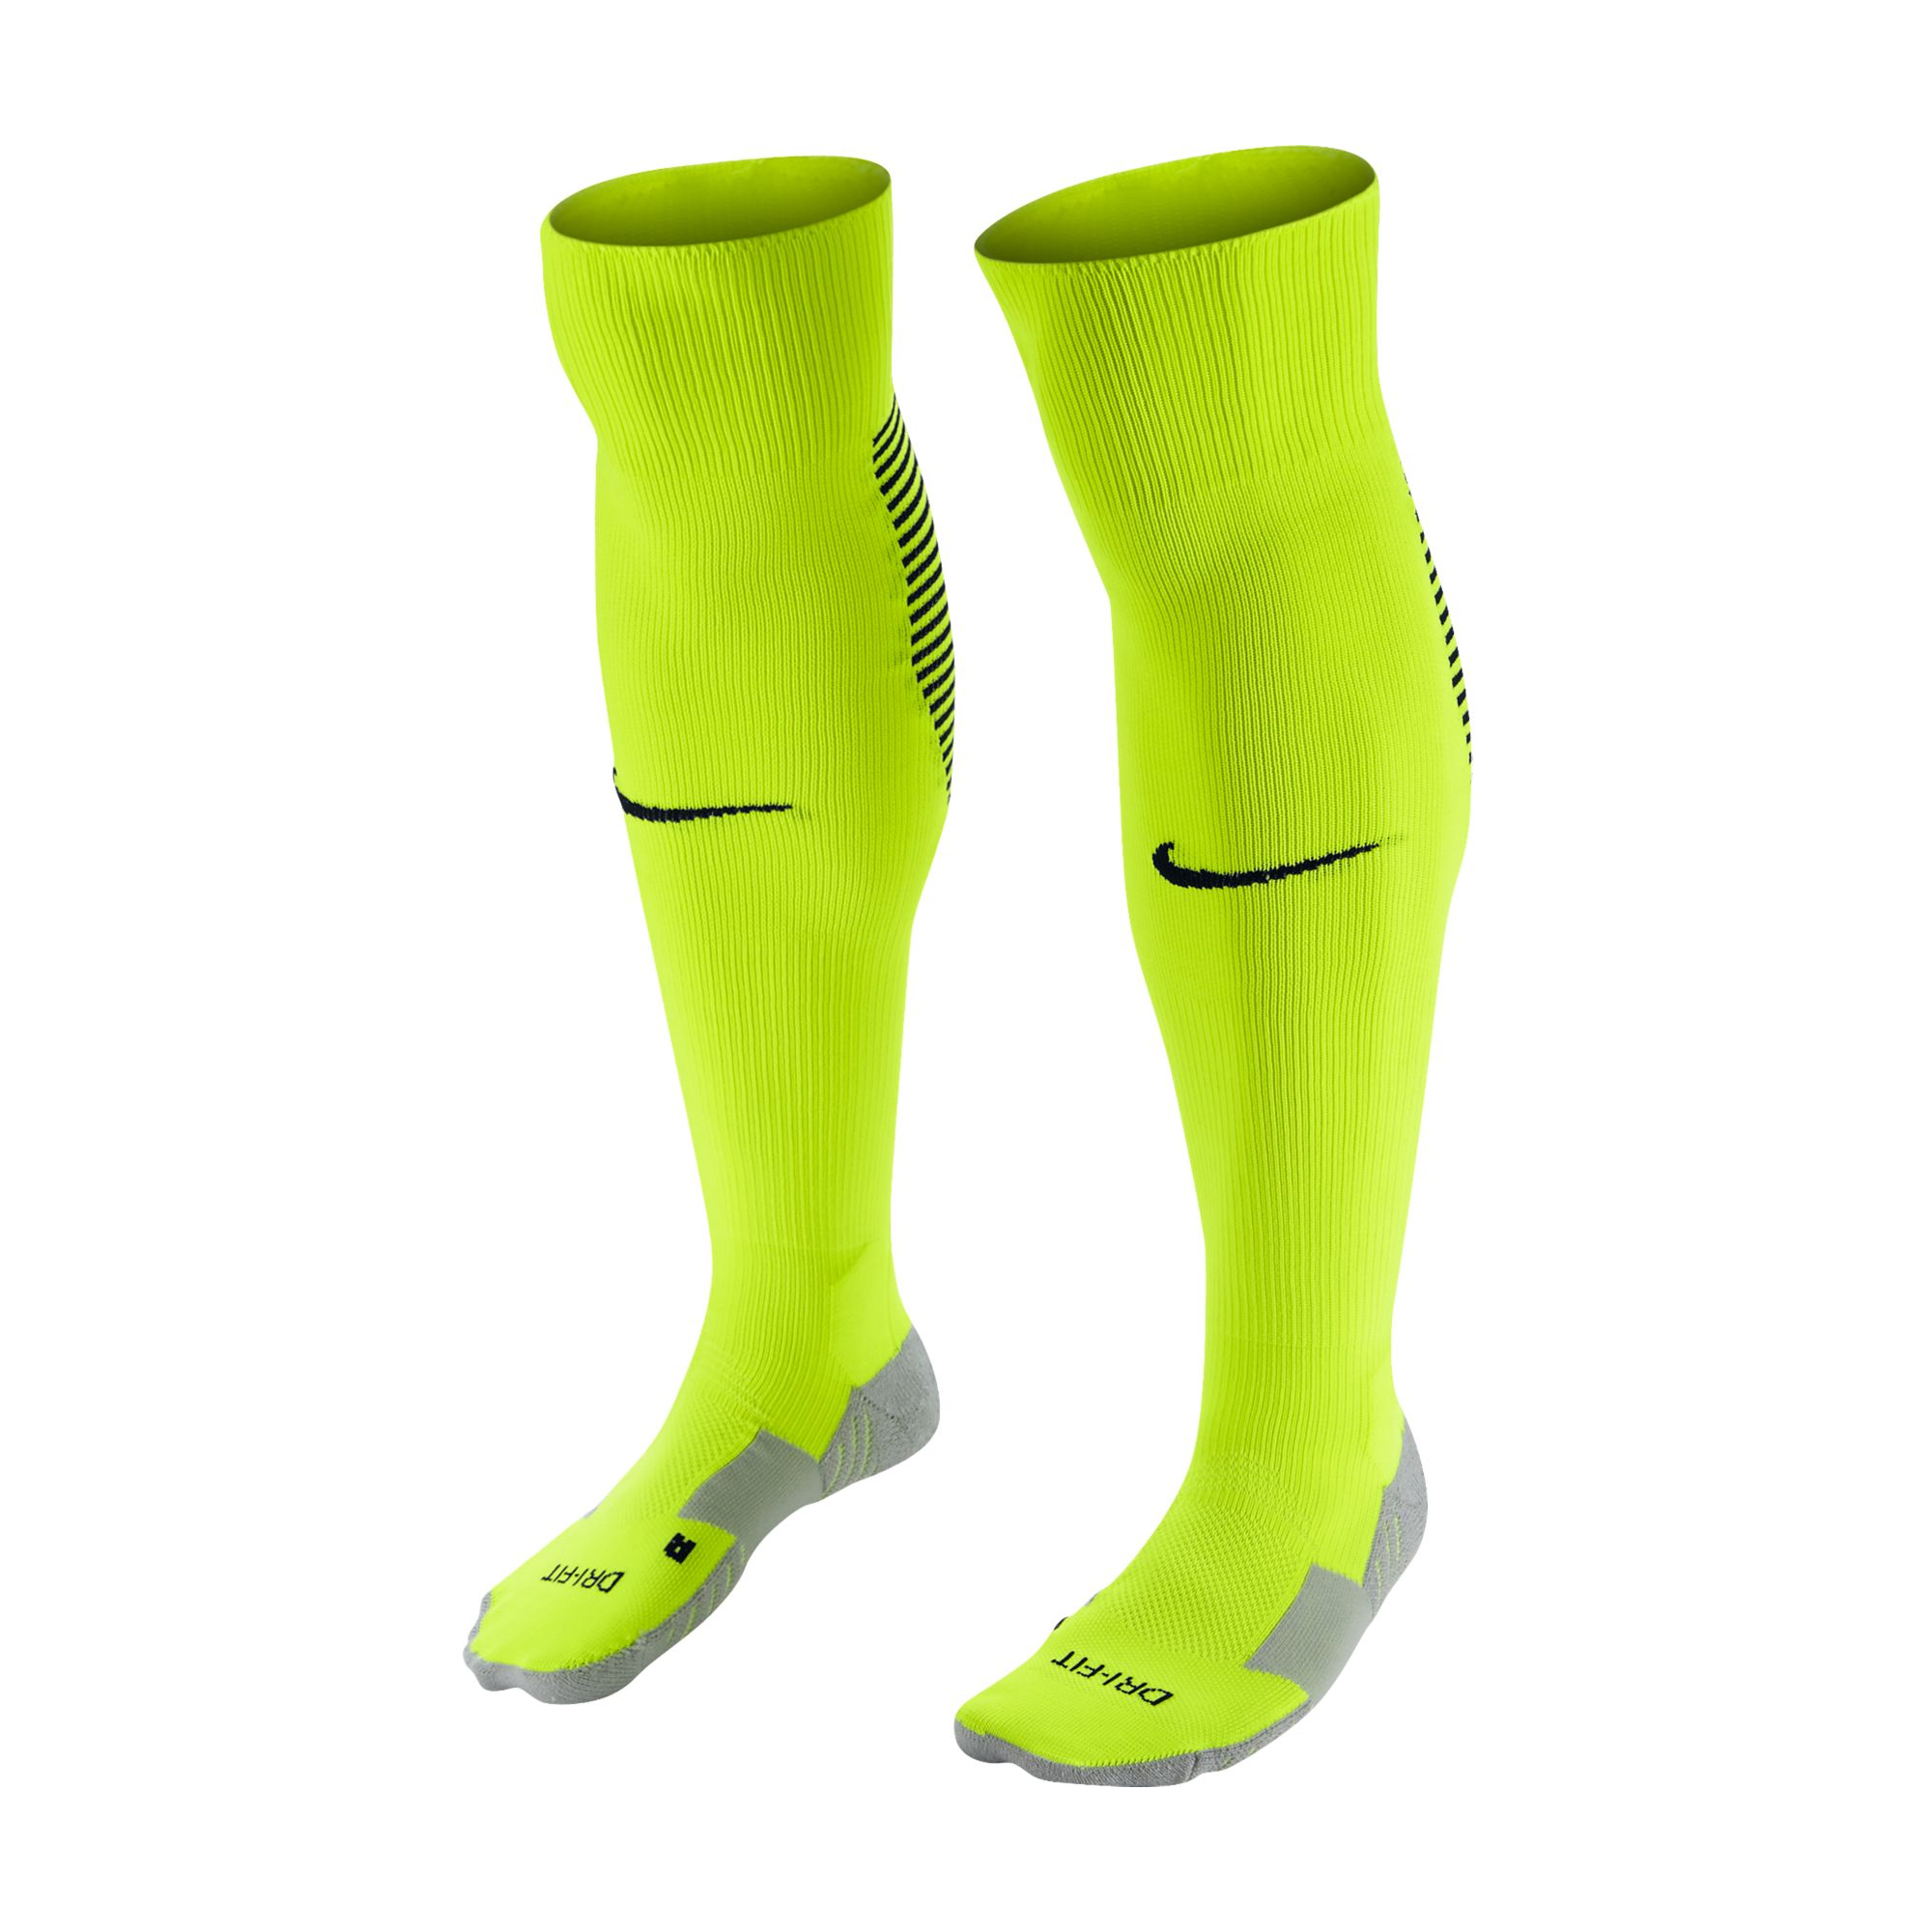 Cushioning in high-wear areas help absorb impact.Dynamic arch provides a  supportive fit and feel.Anatomical left and right socks are designed for a  natural ... 60a04db2c52